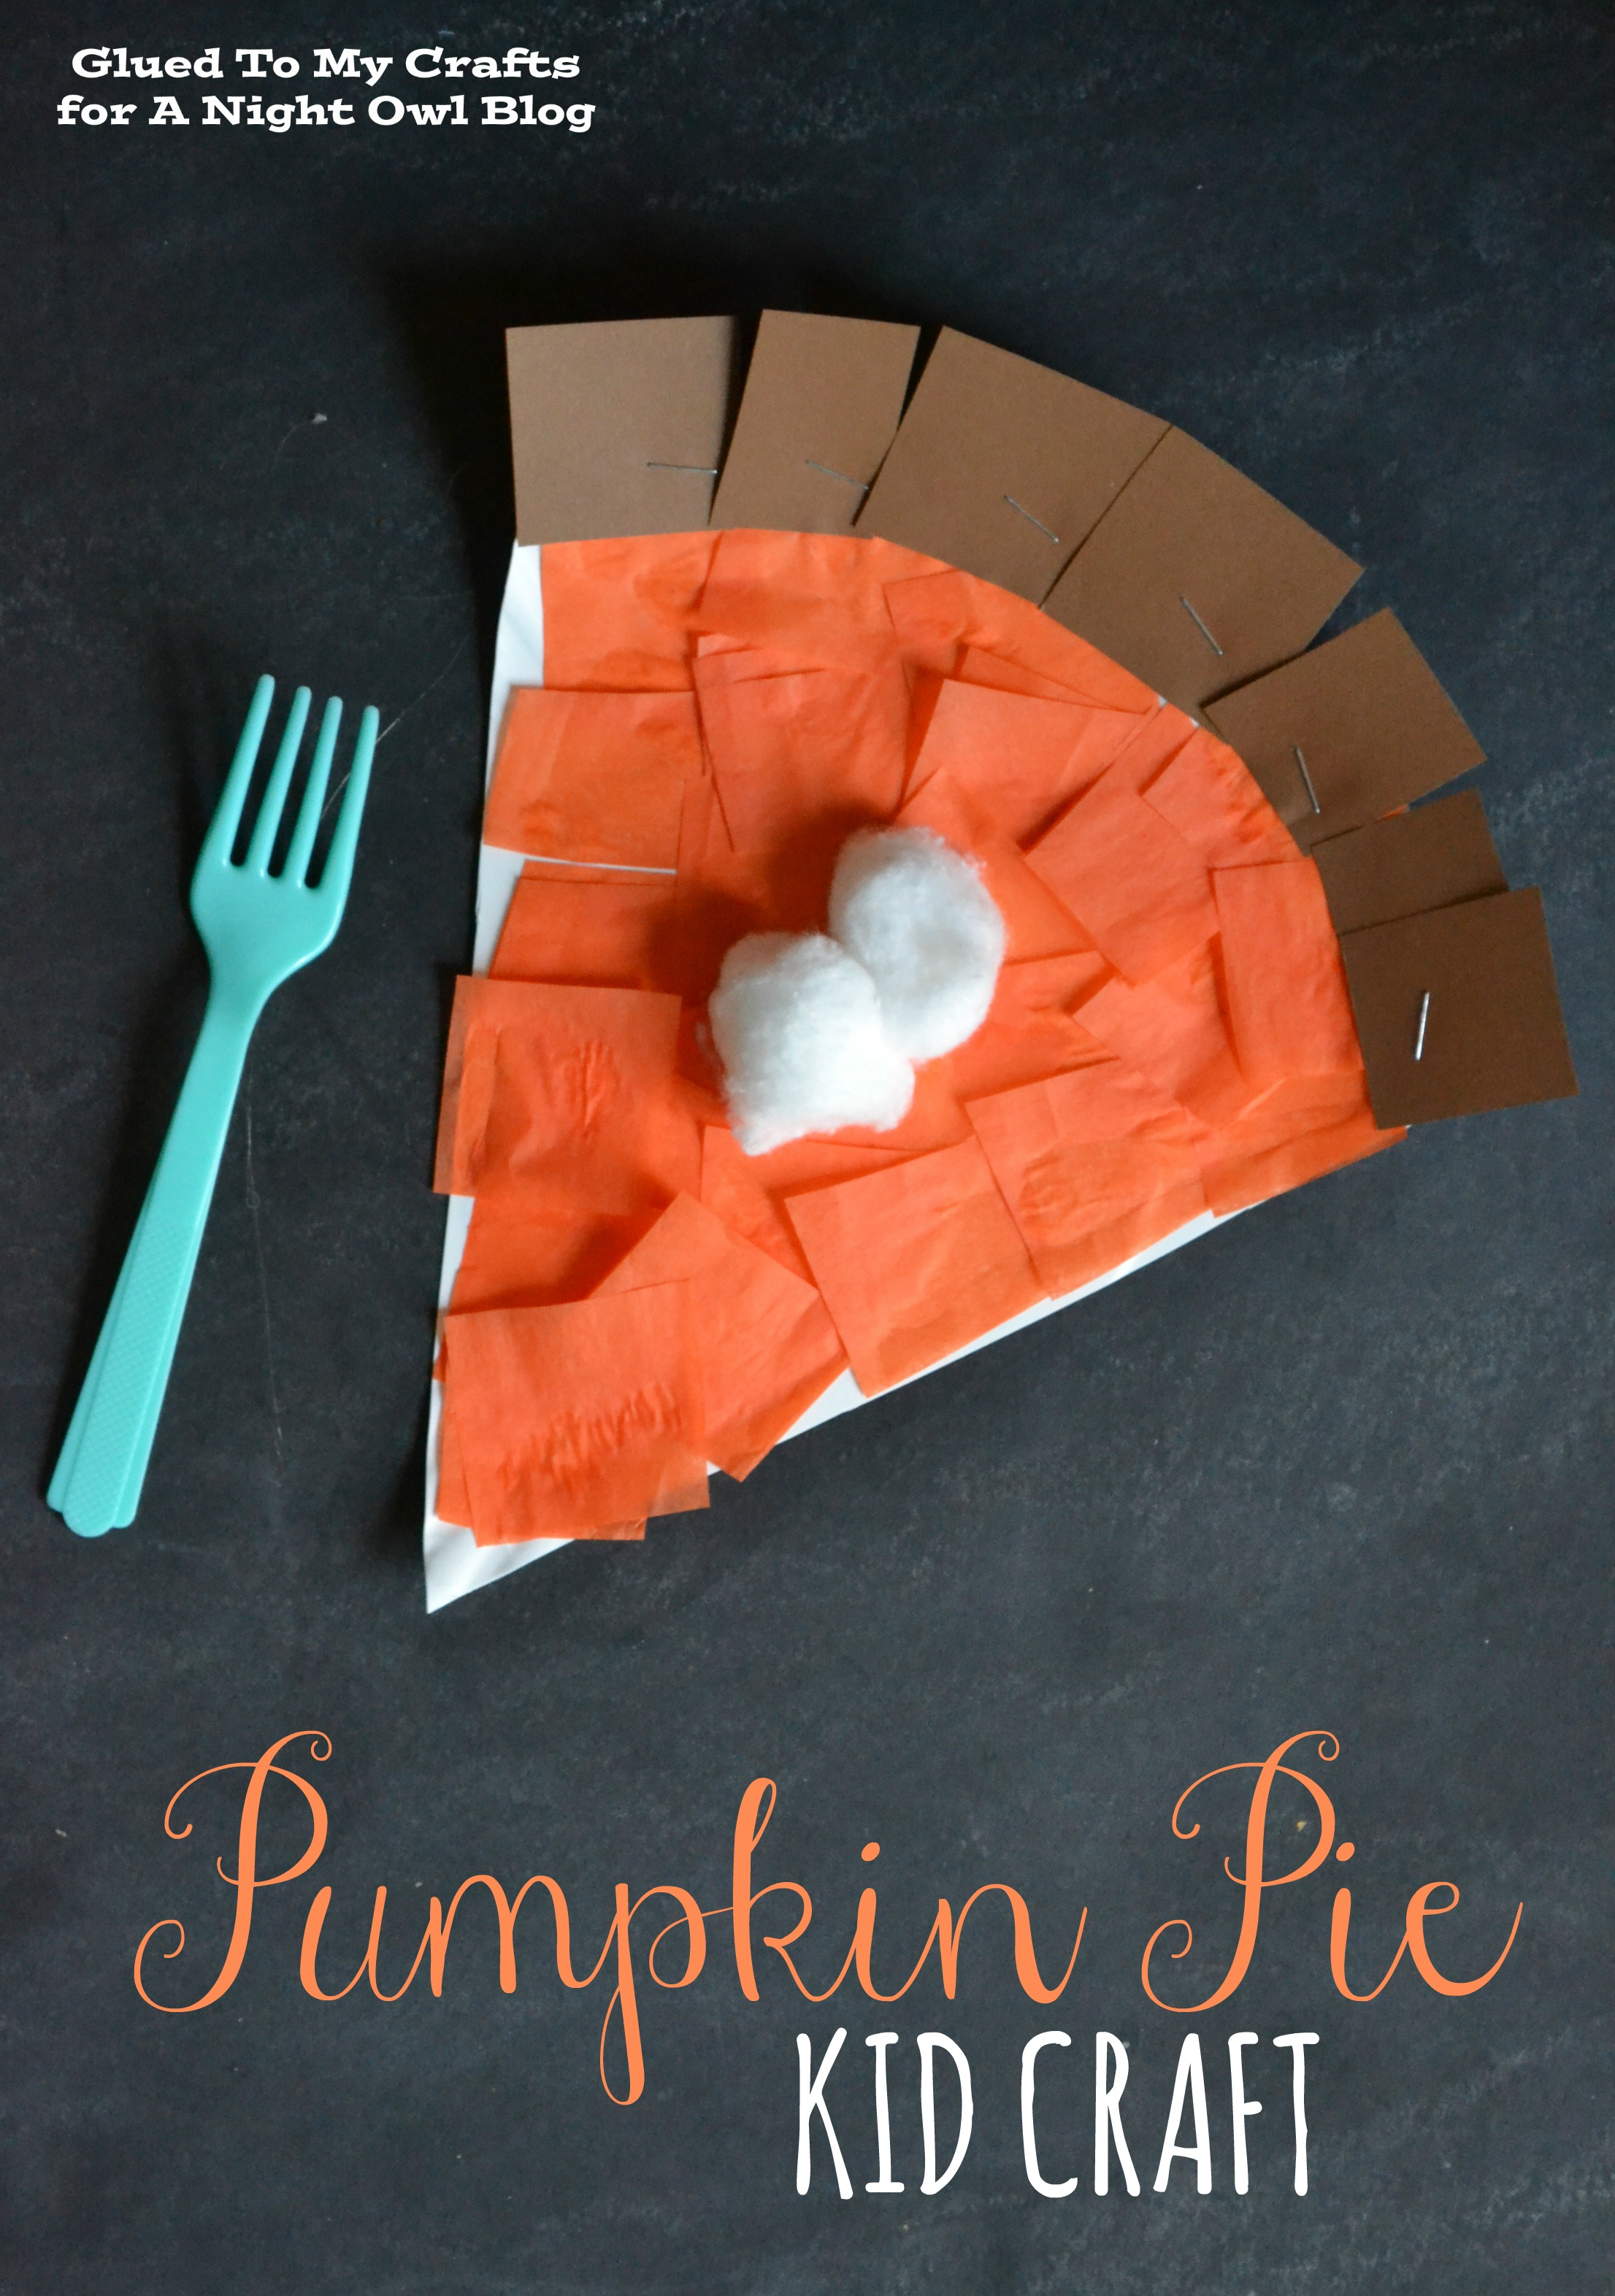 Thanksgiving Craft For Kids Pumpkin Pie Kids Craft A Night Owl Blog